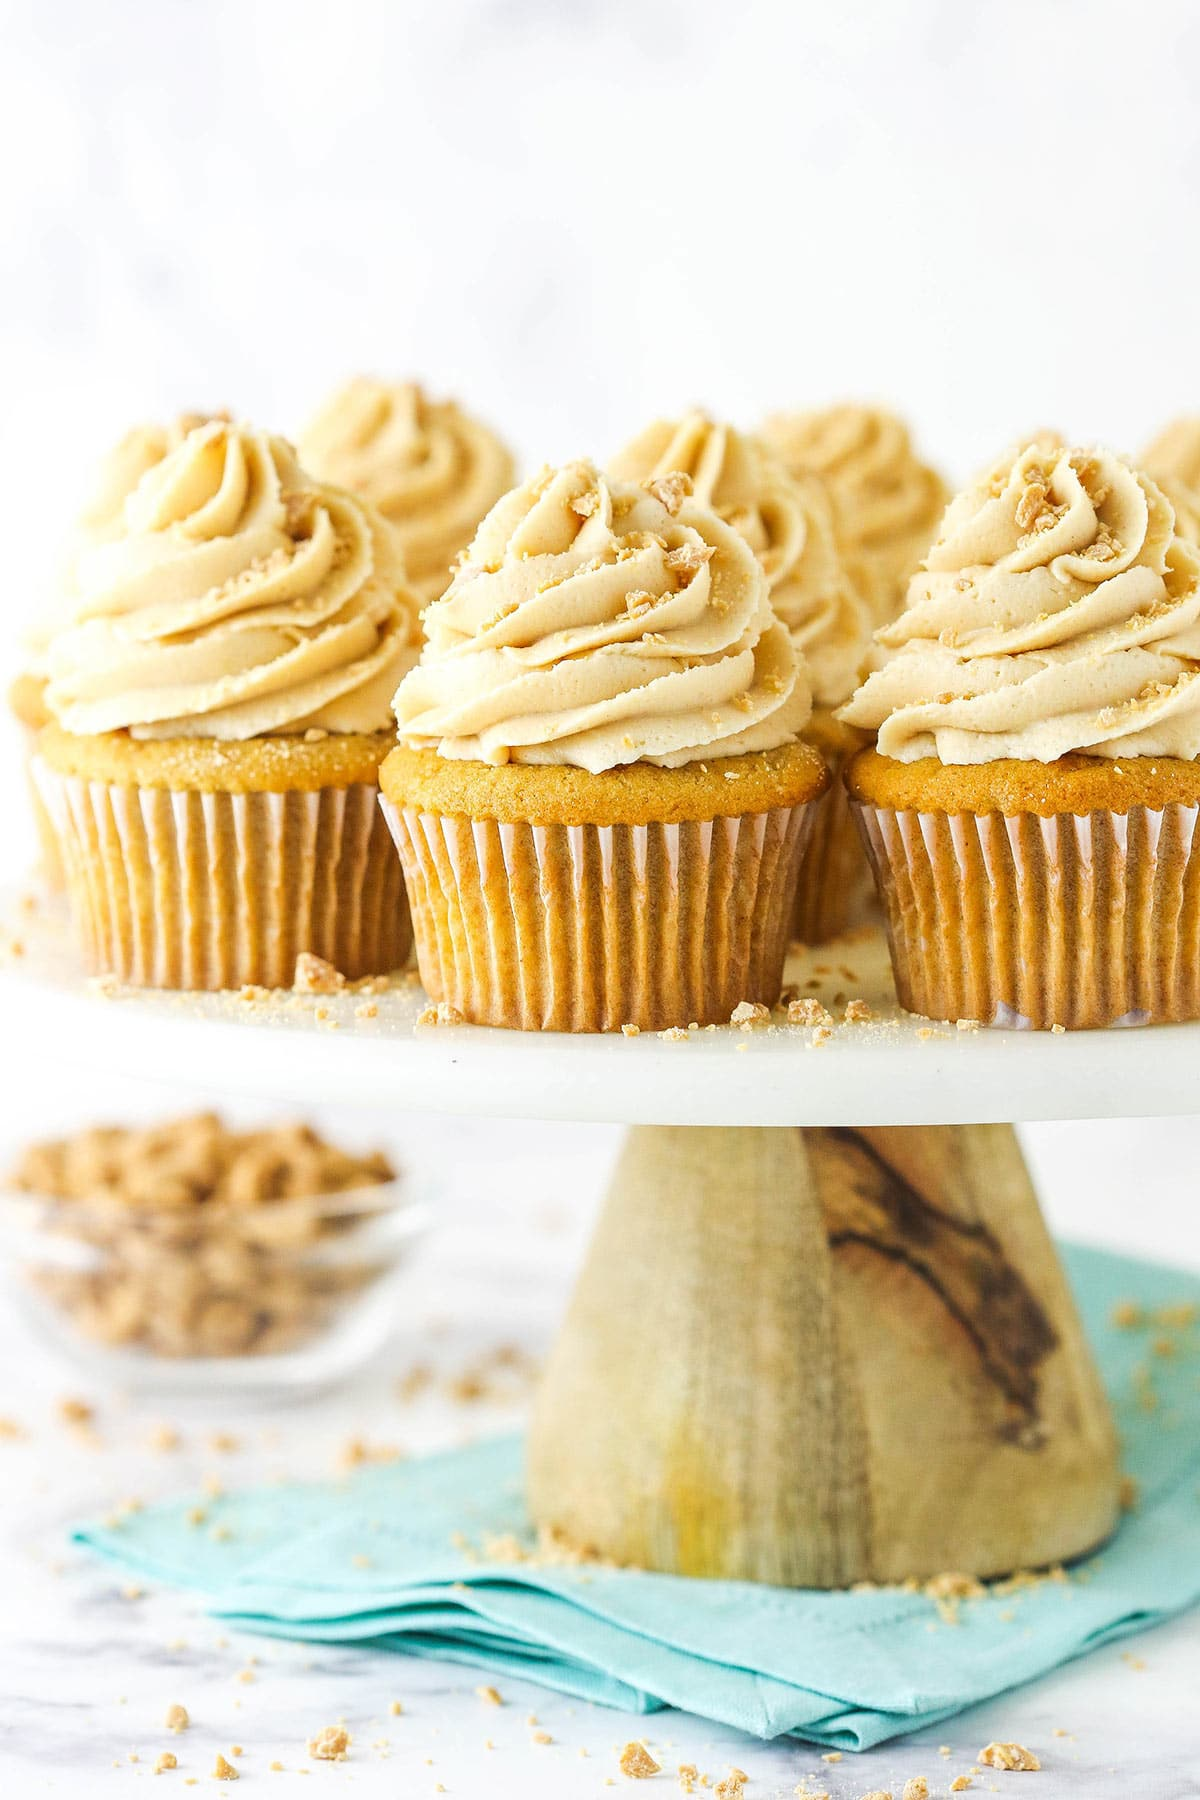 A close-up shot of homemade cupcakes on a white cake stand with a wooden base